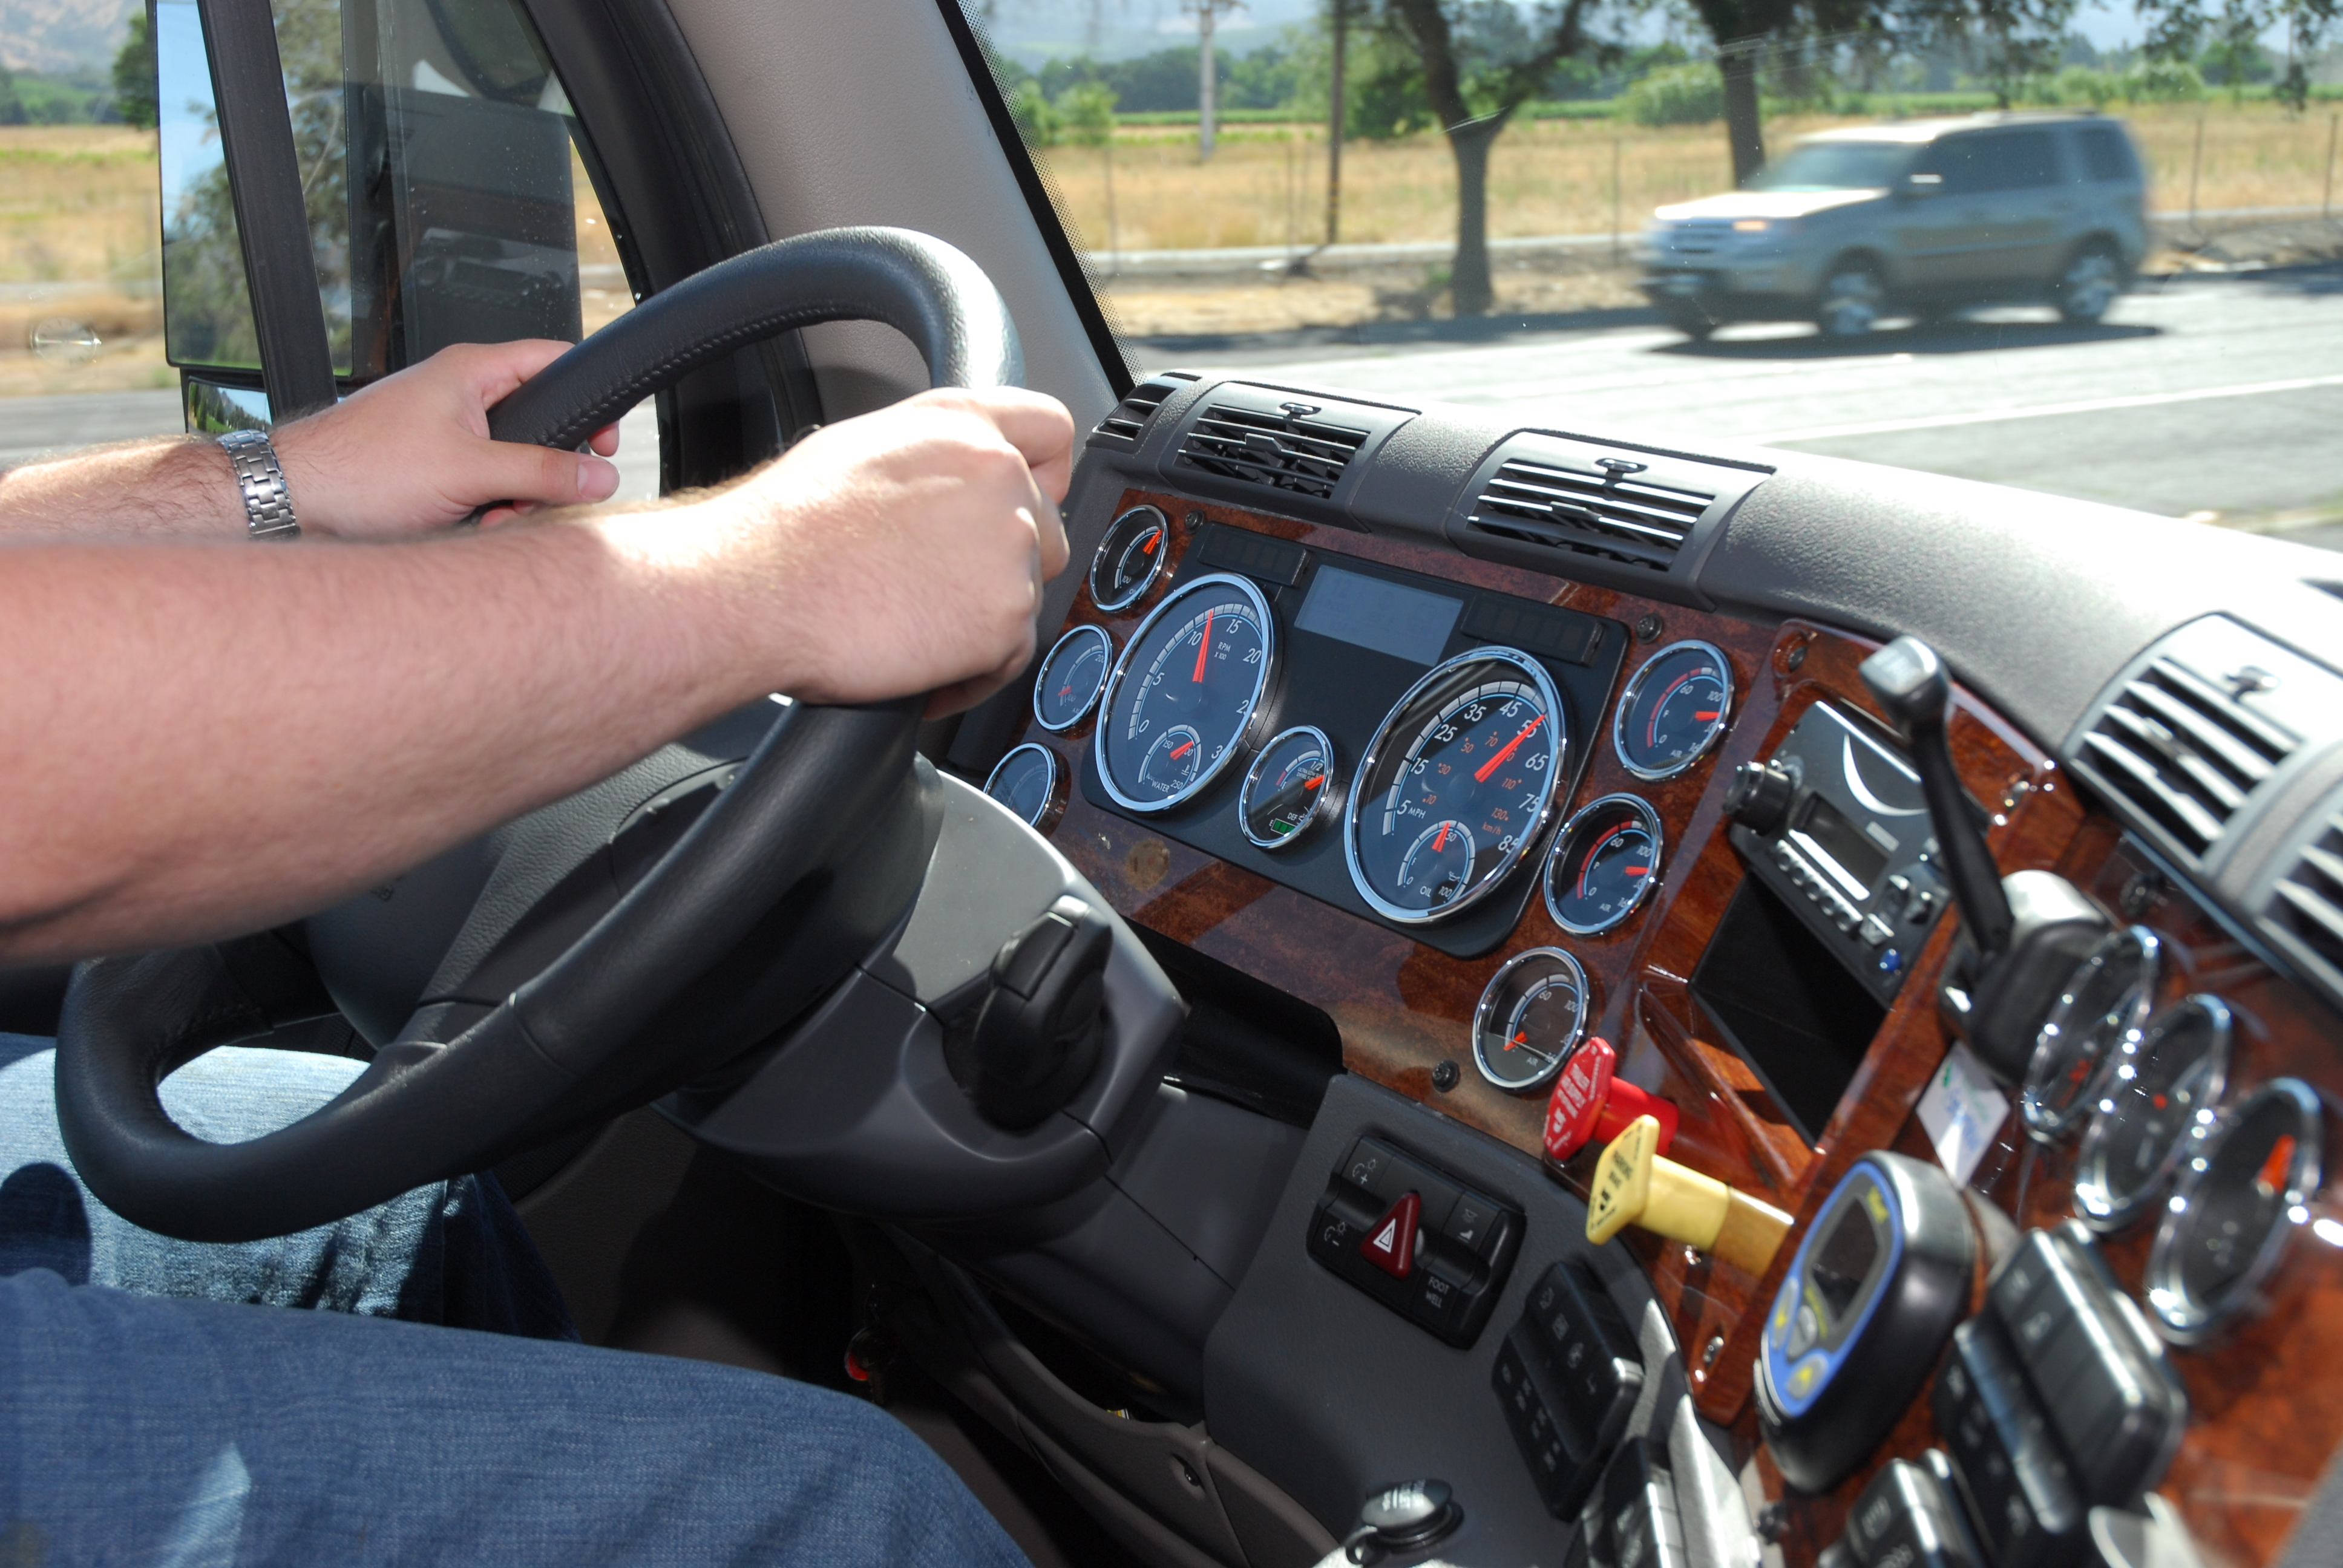 Driver Shortage: Already Over the Cliff?